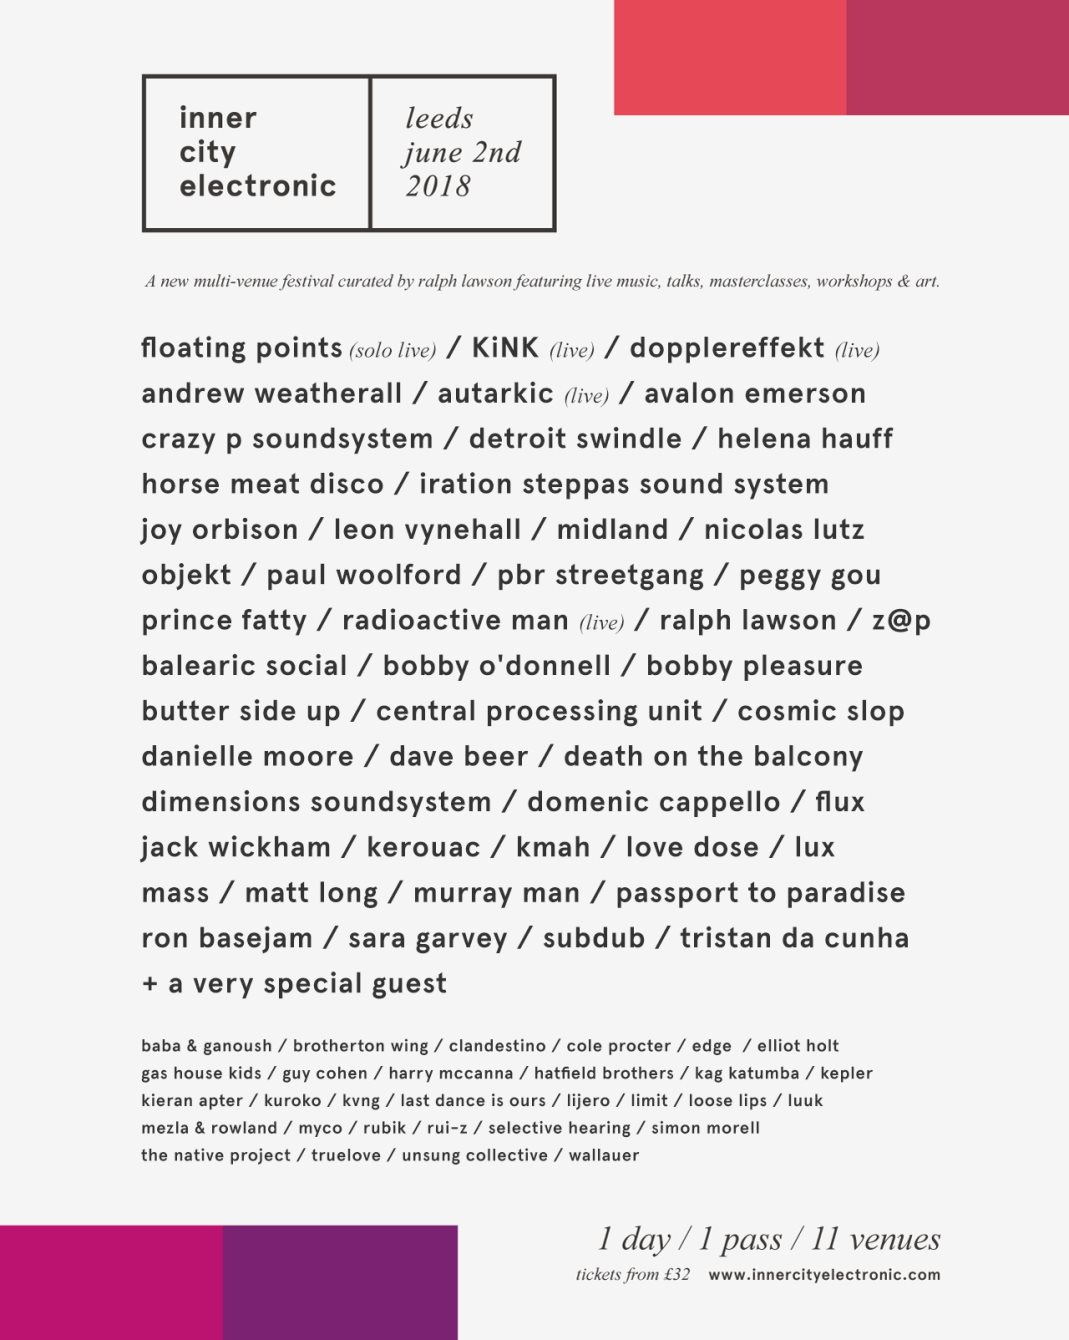 inner city electronic - Flyer front